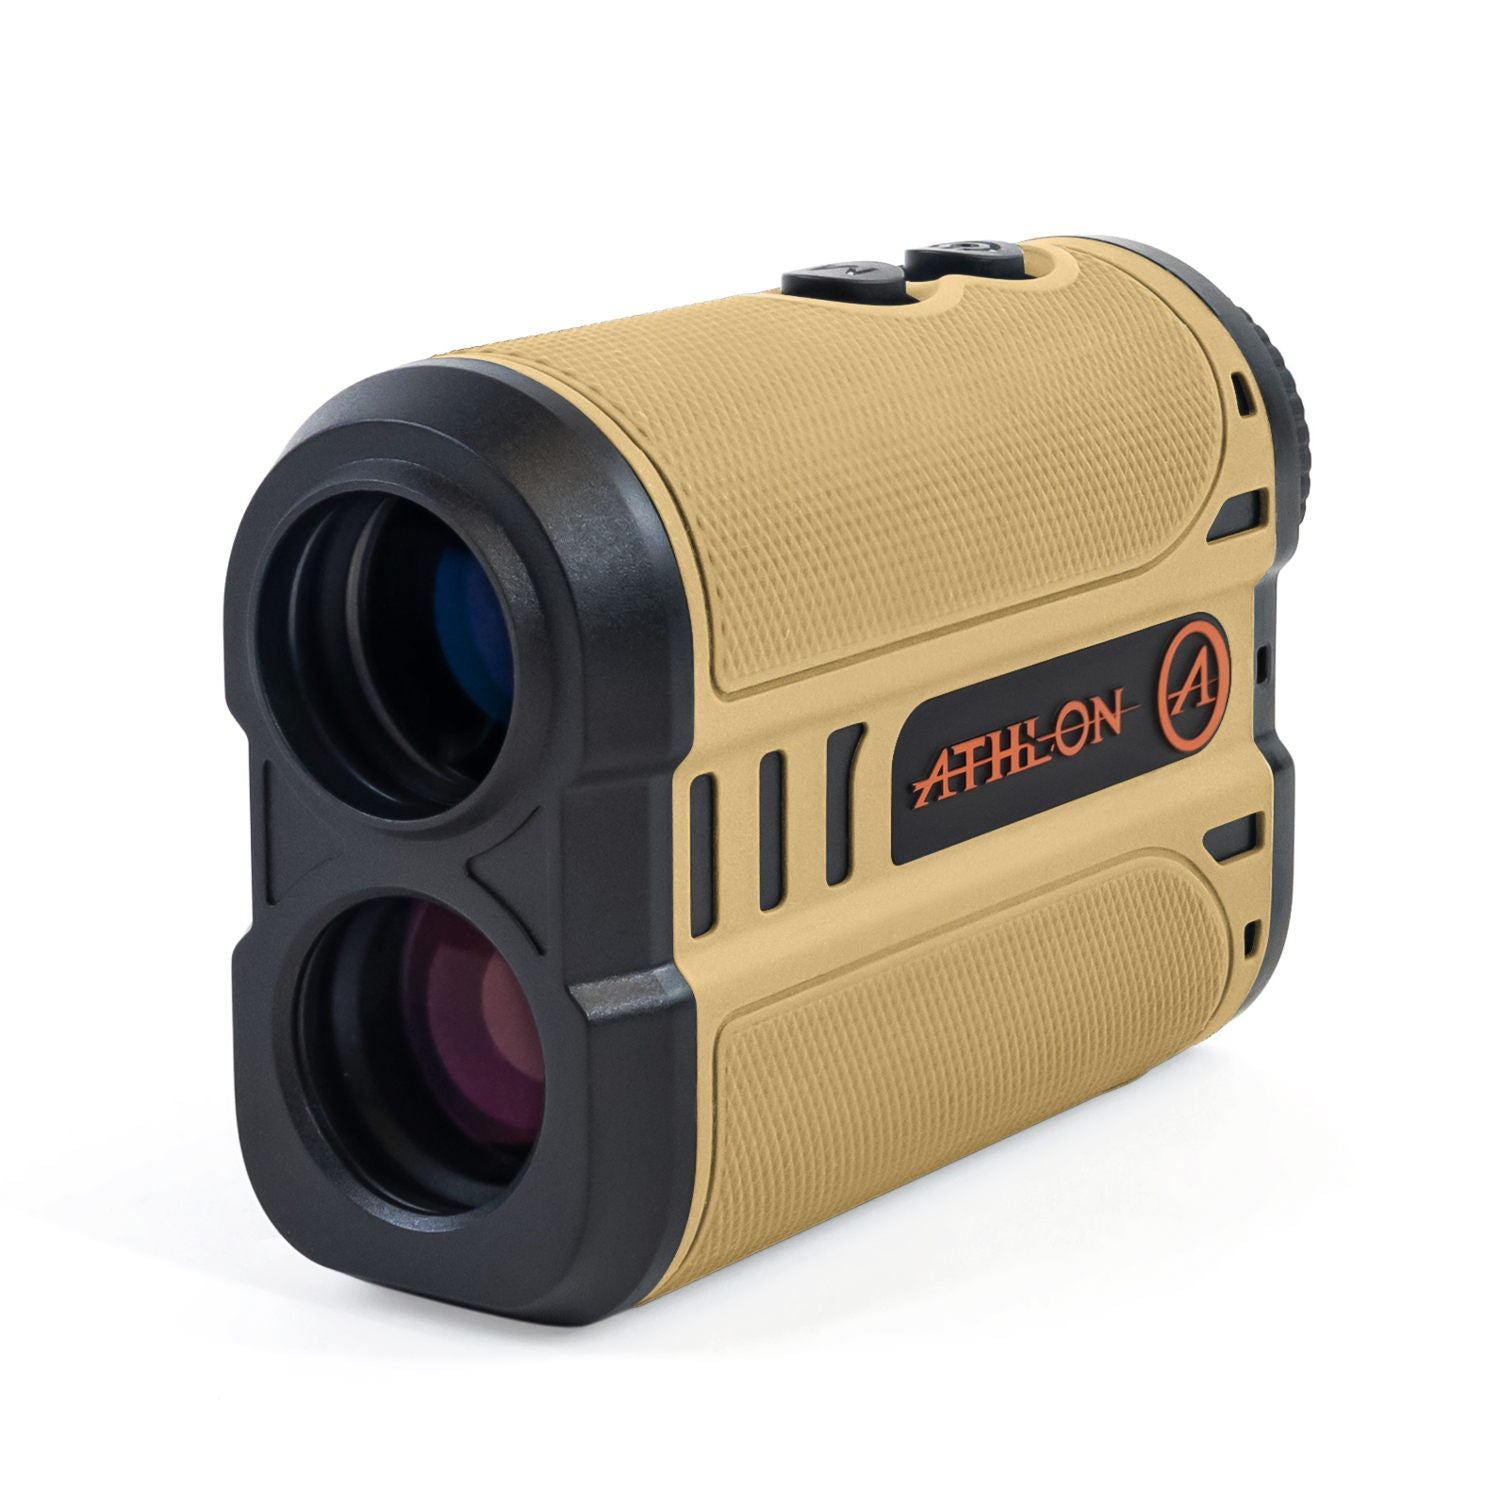 Athlon Optics Midas 1220y Laser Rangefinder - Tan